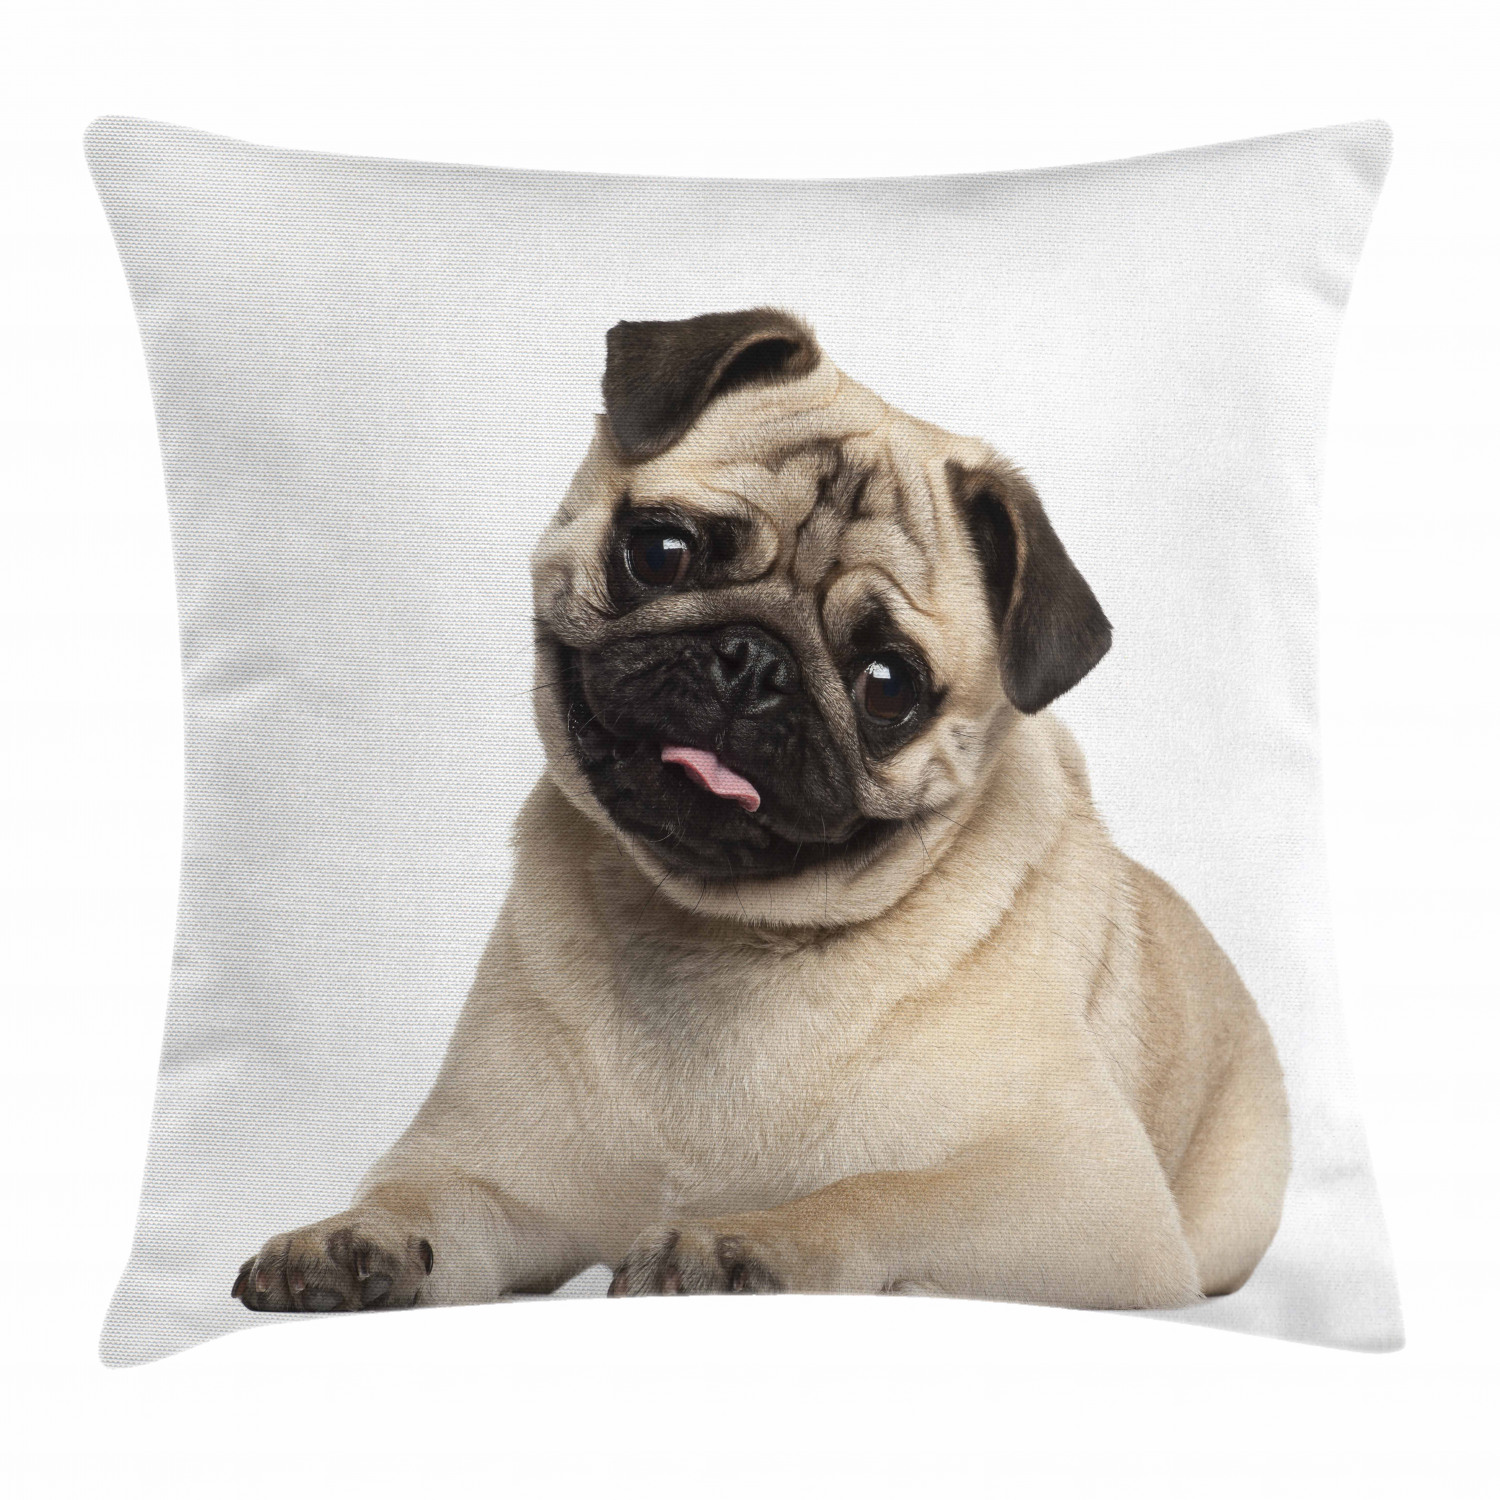 Pug Throw Pillow Cushion Cover Nine Months Old Pug Puppy Lying Around Cute Pet Funny Animal Domestication Print Decorative Square Accent Pillow Case 16 X 16 Inches Pale Brown Black By Ambesonne